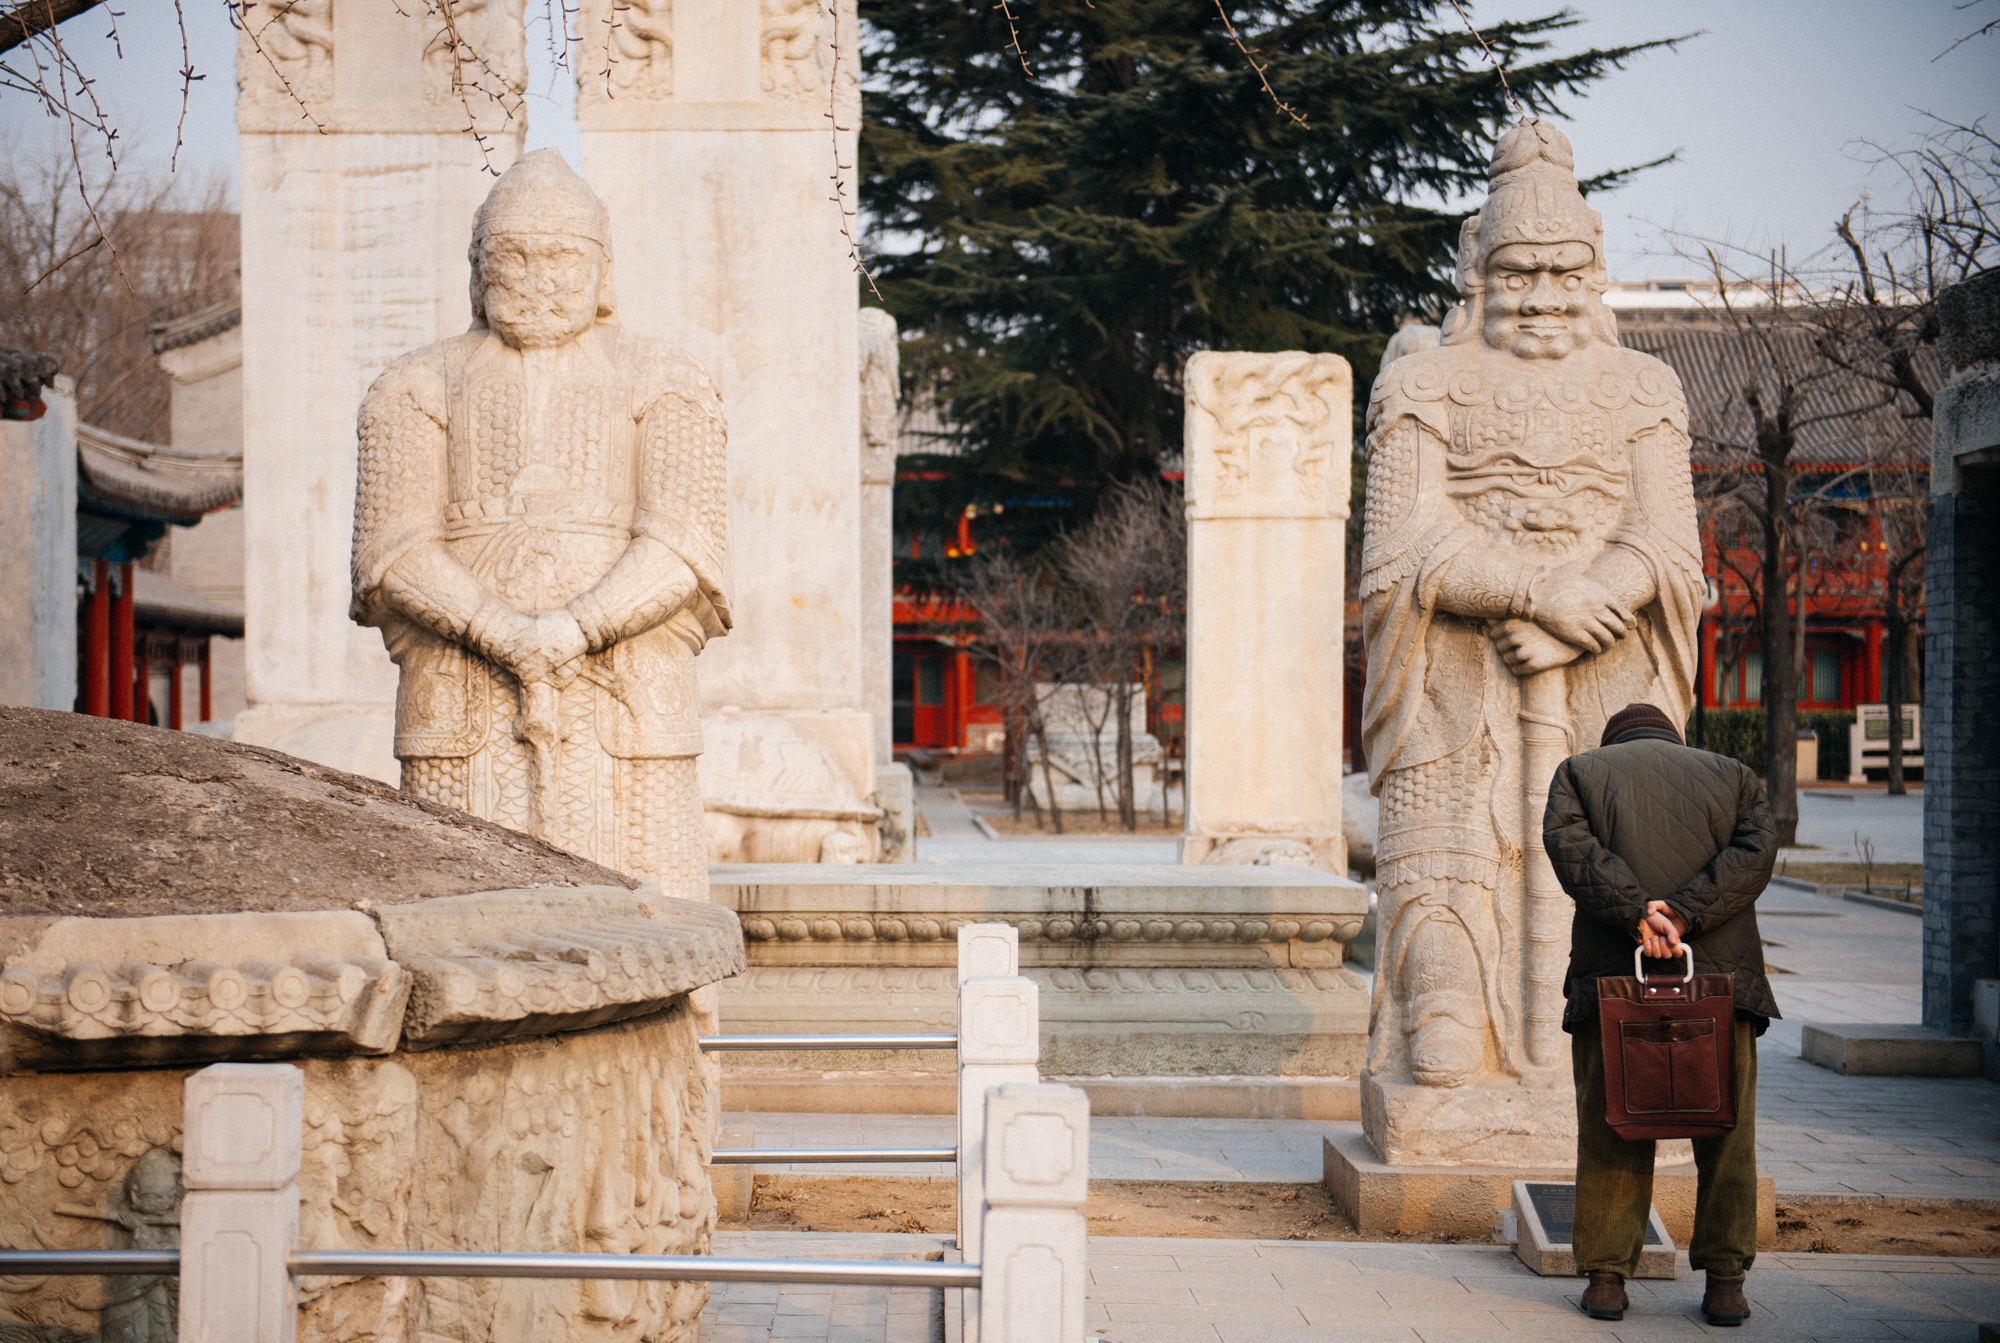 The grounds where the temple once stood have been turned into the Beijing Art Museum of Stone Carvings. Many statues and tombstones are on display on both sides of the temple.